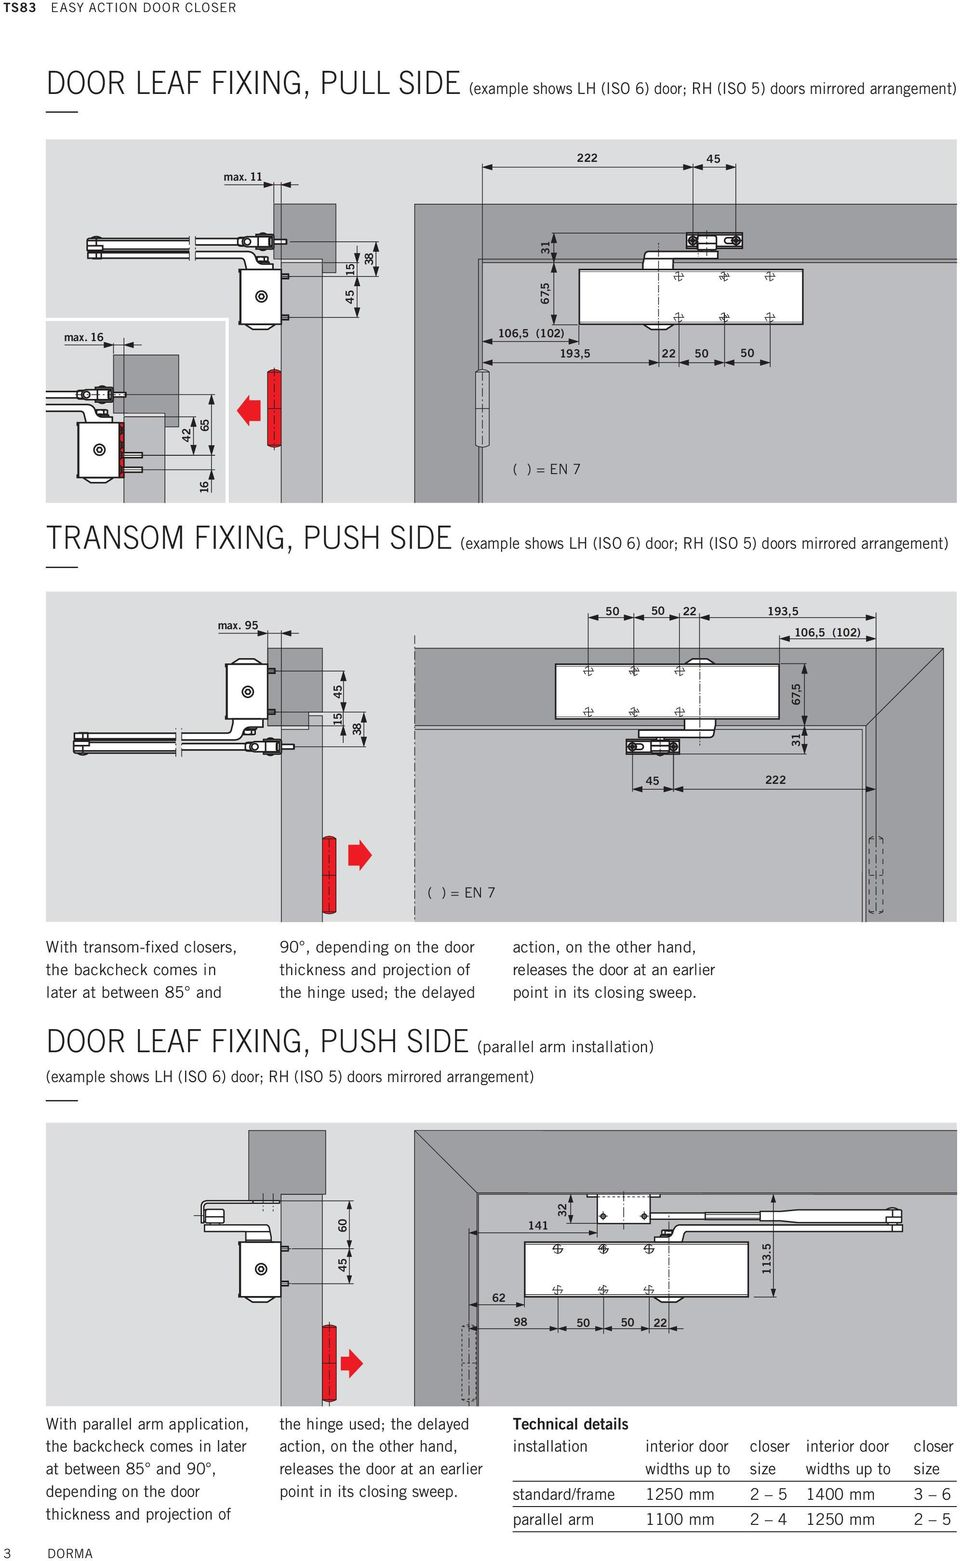 95 50 50 193,5 106,5 (10) 38 15 31 67,5 With transom-fixed closers, the backcheck comes in later at between 85 and 90, depending on the door thickness and projection of the hinge used; the delayed